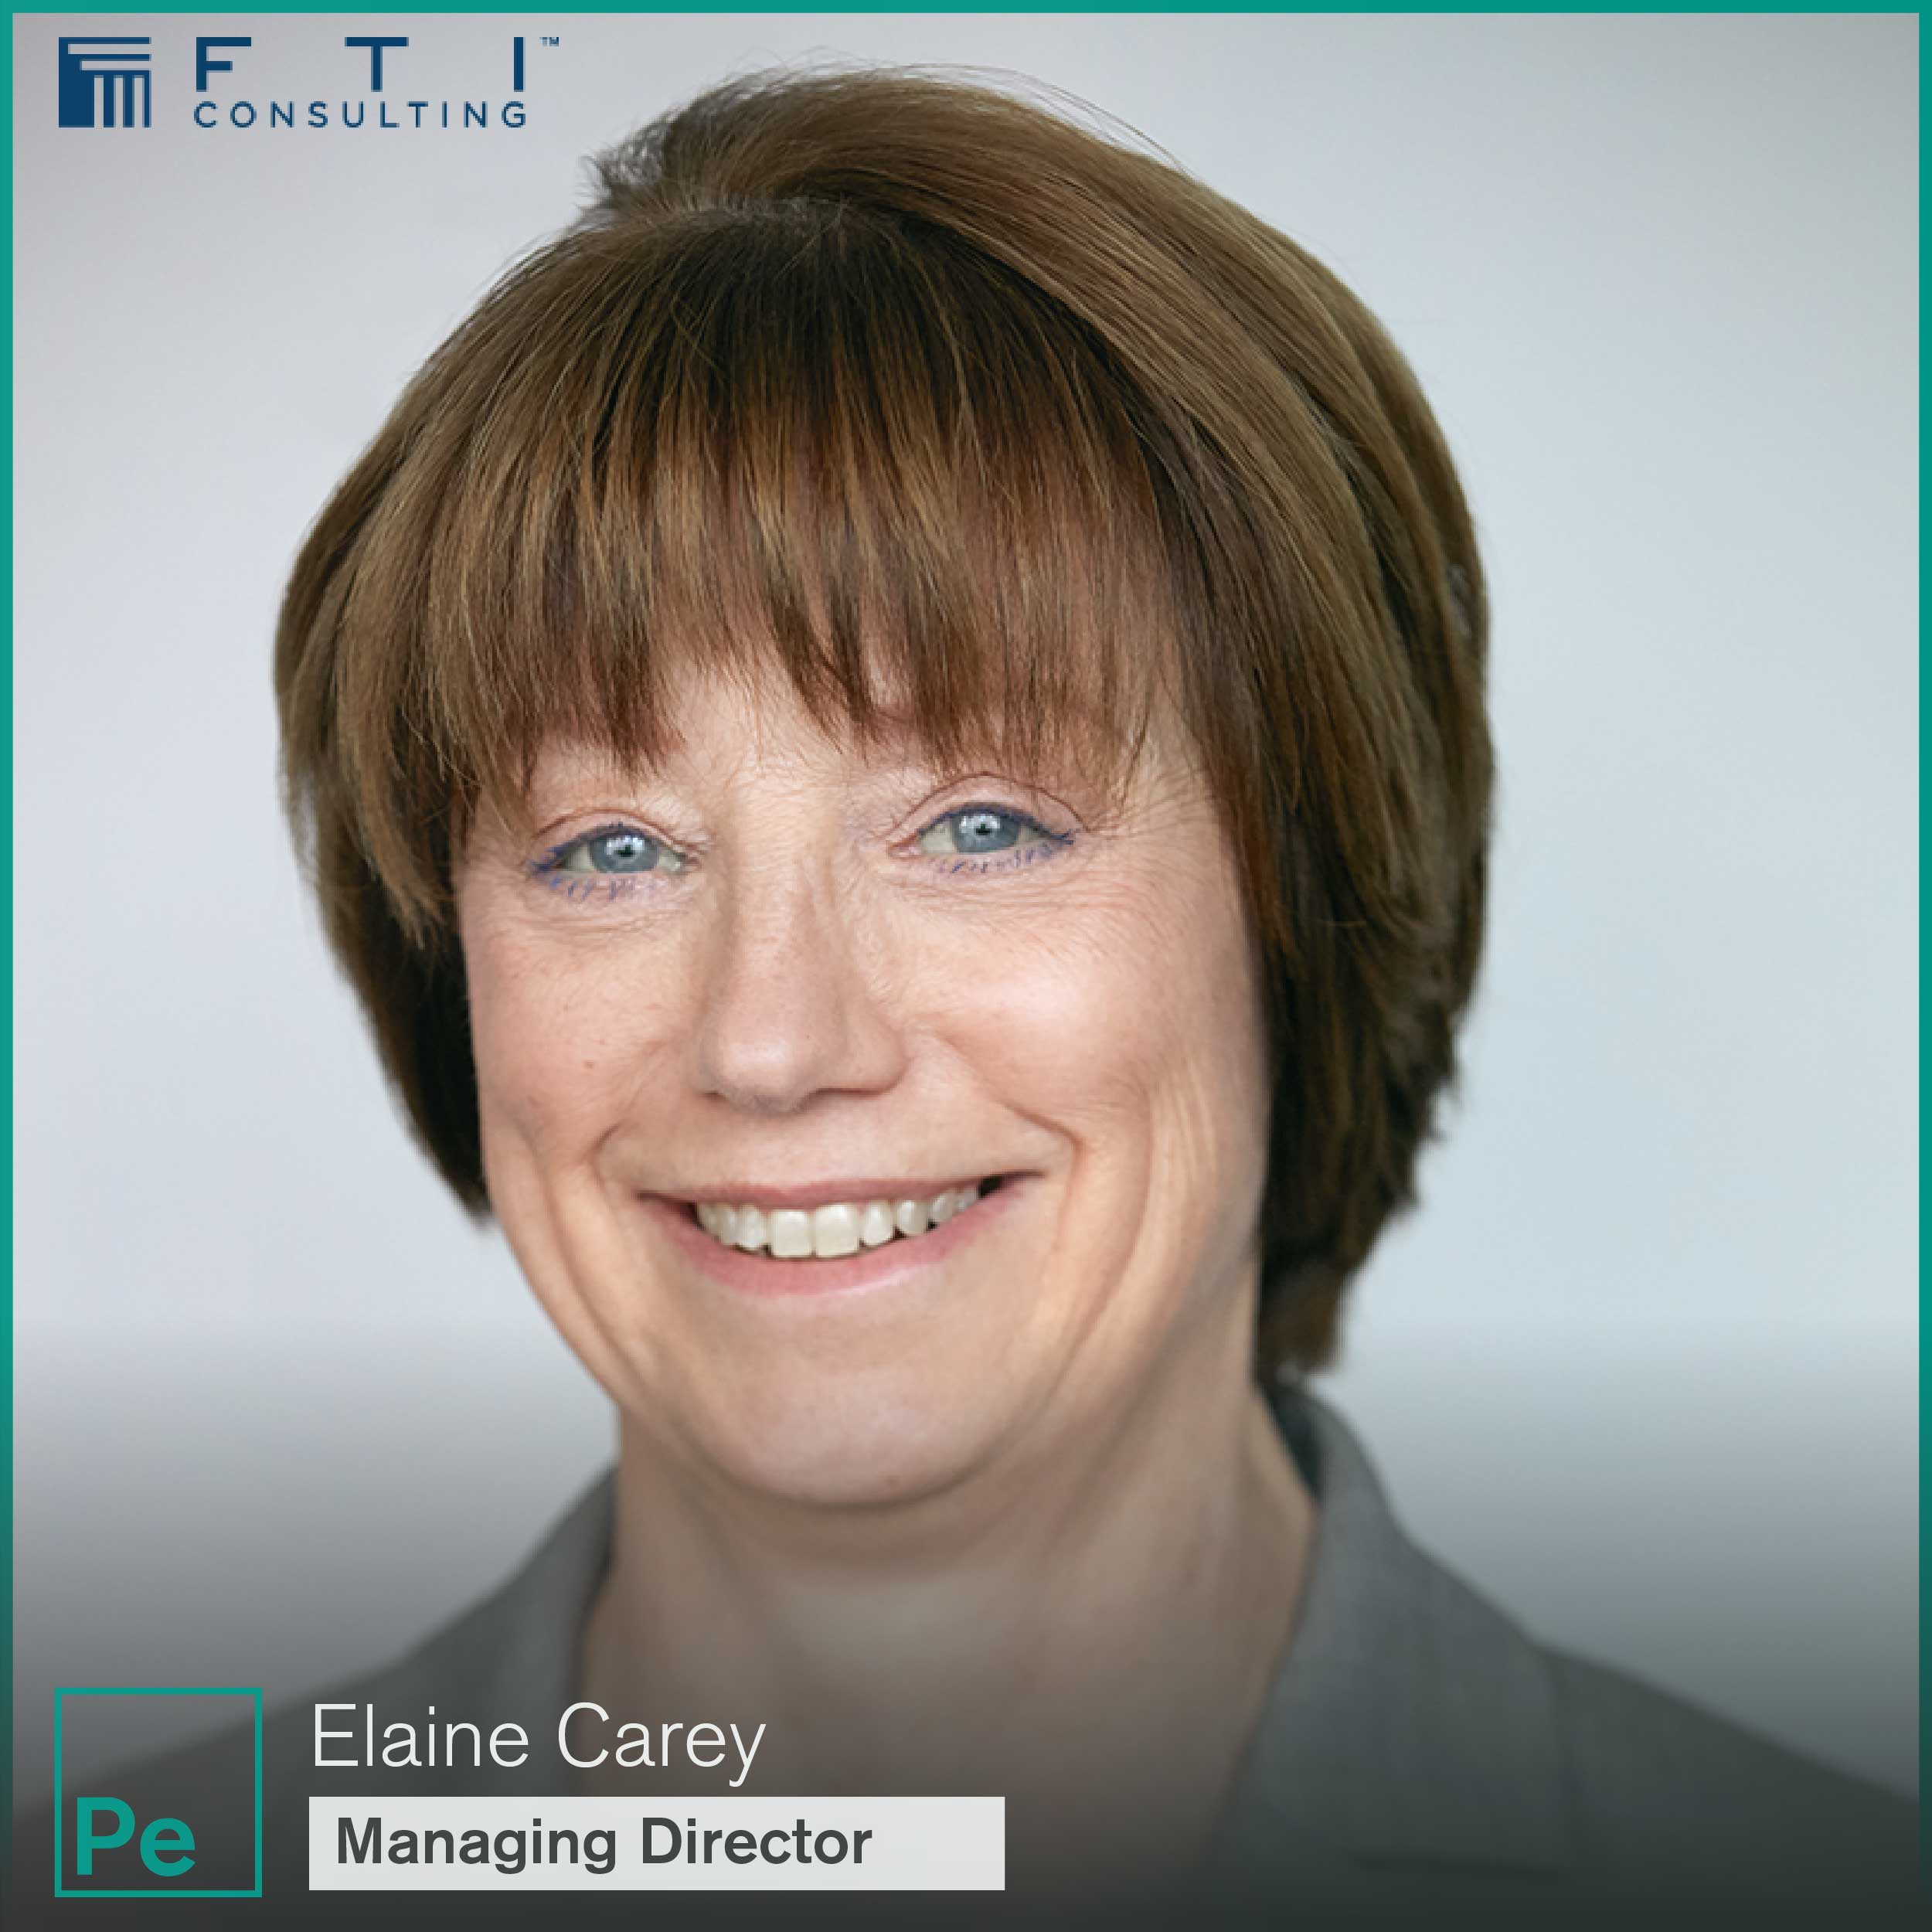 Elaine Carey, Managing Director at FTI Consulting, focusing on the cannabis industry